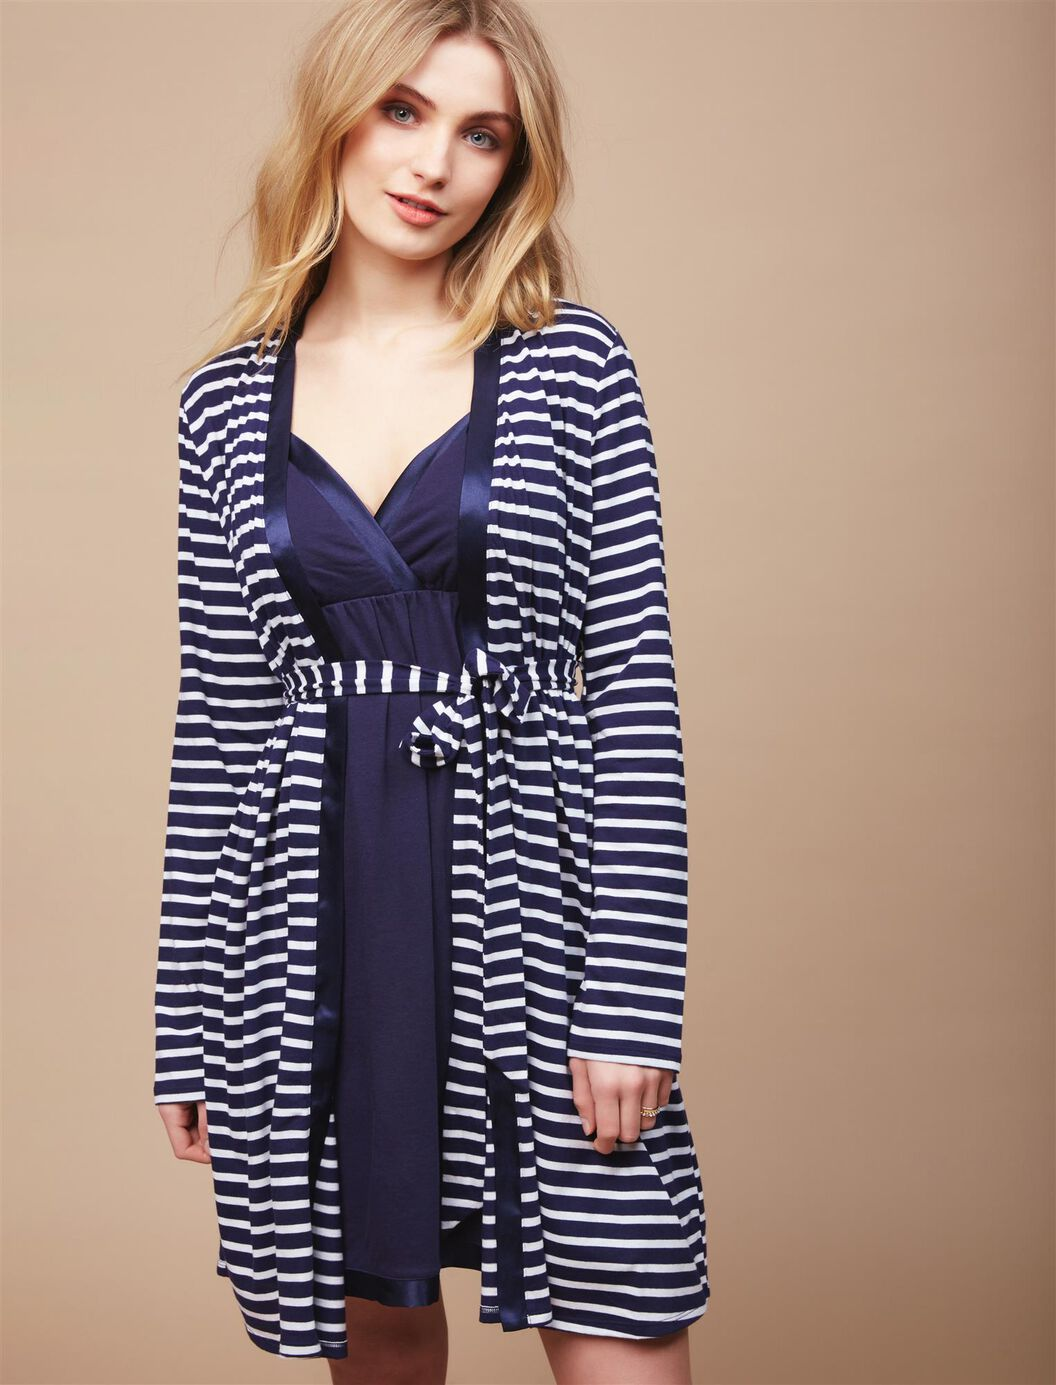 Satin Trim Maternity Nightgown And Robe Set at Motherhood Maternity in Victor, NY | Tuggl